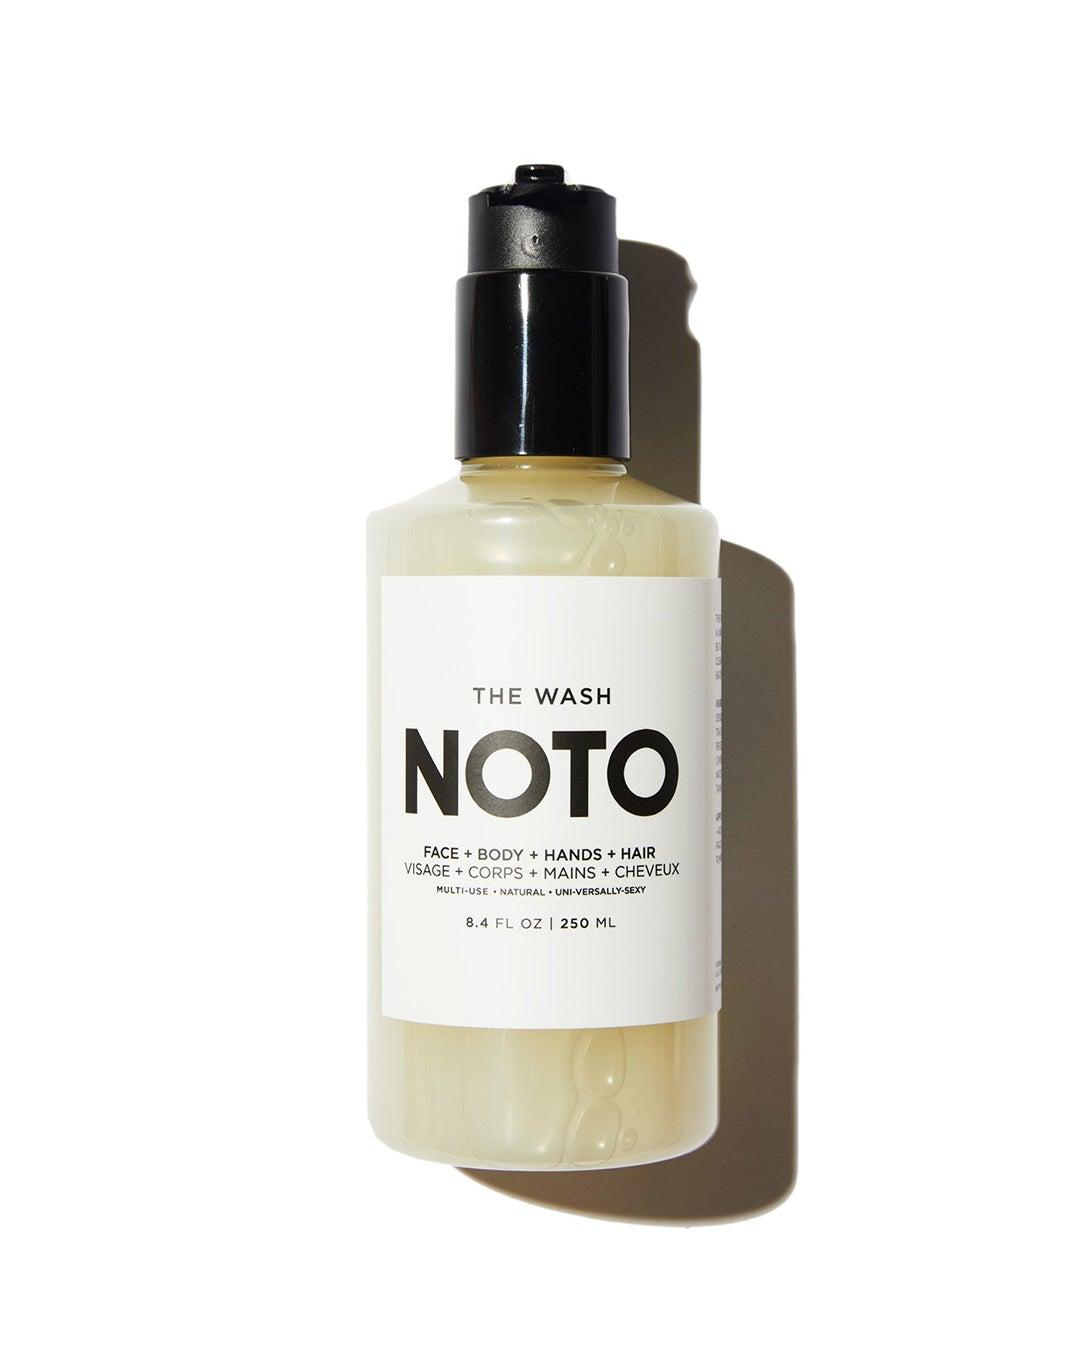 Noto | The Wash | Face + Body + Hands + Hair